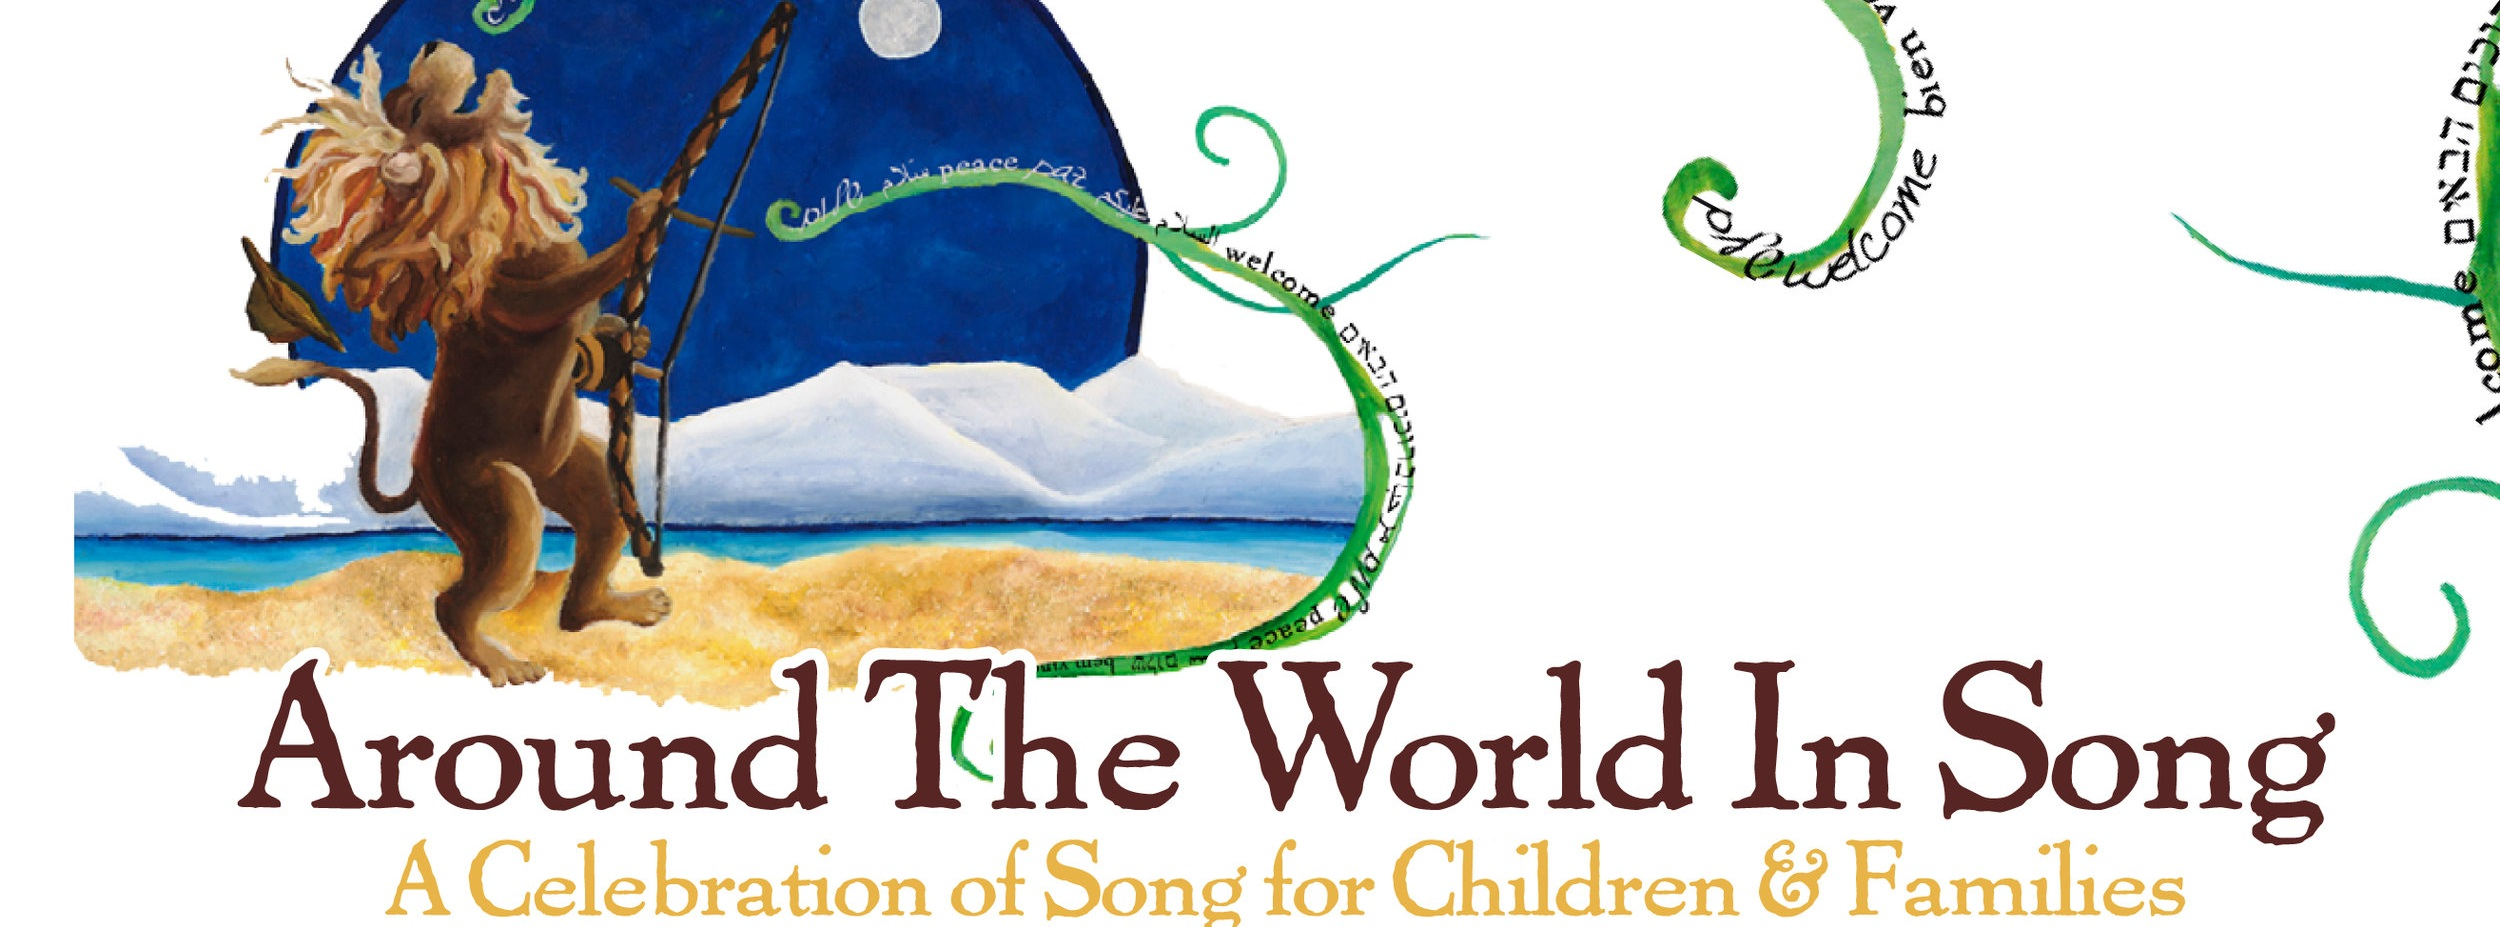 The Guy Mendilow Ensemble opens up a world of music to children in this deeply interactive global adventure